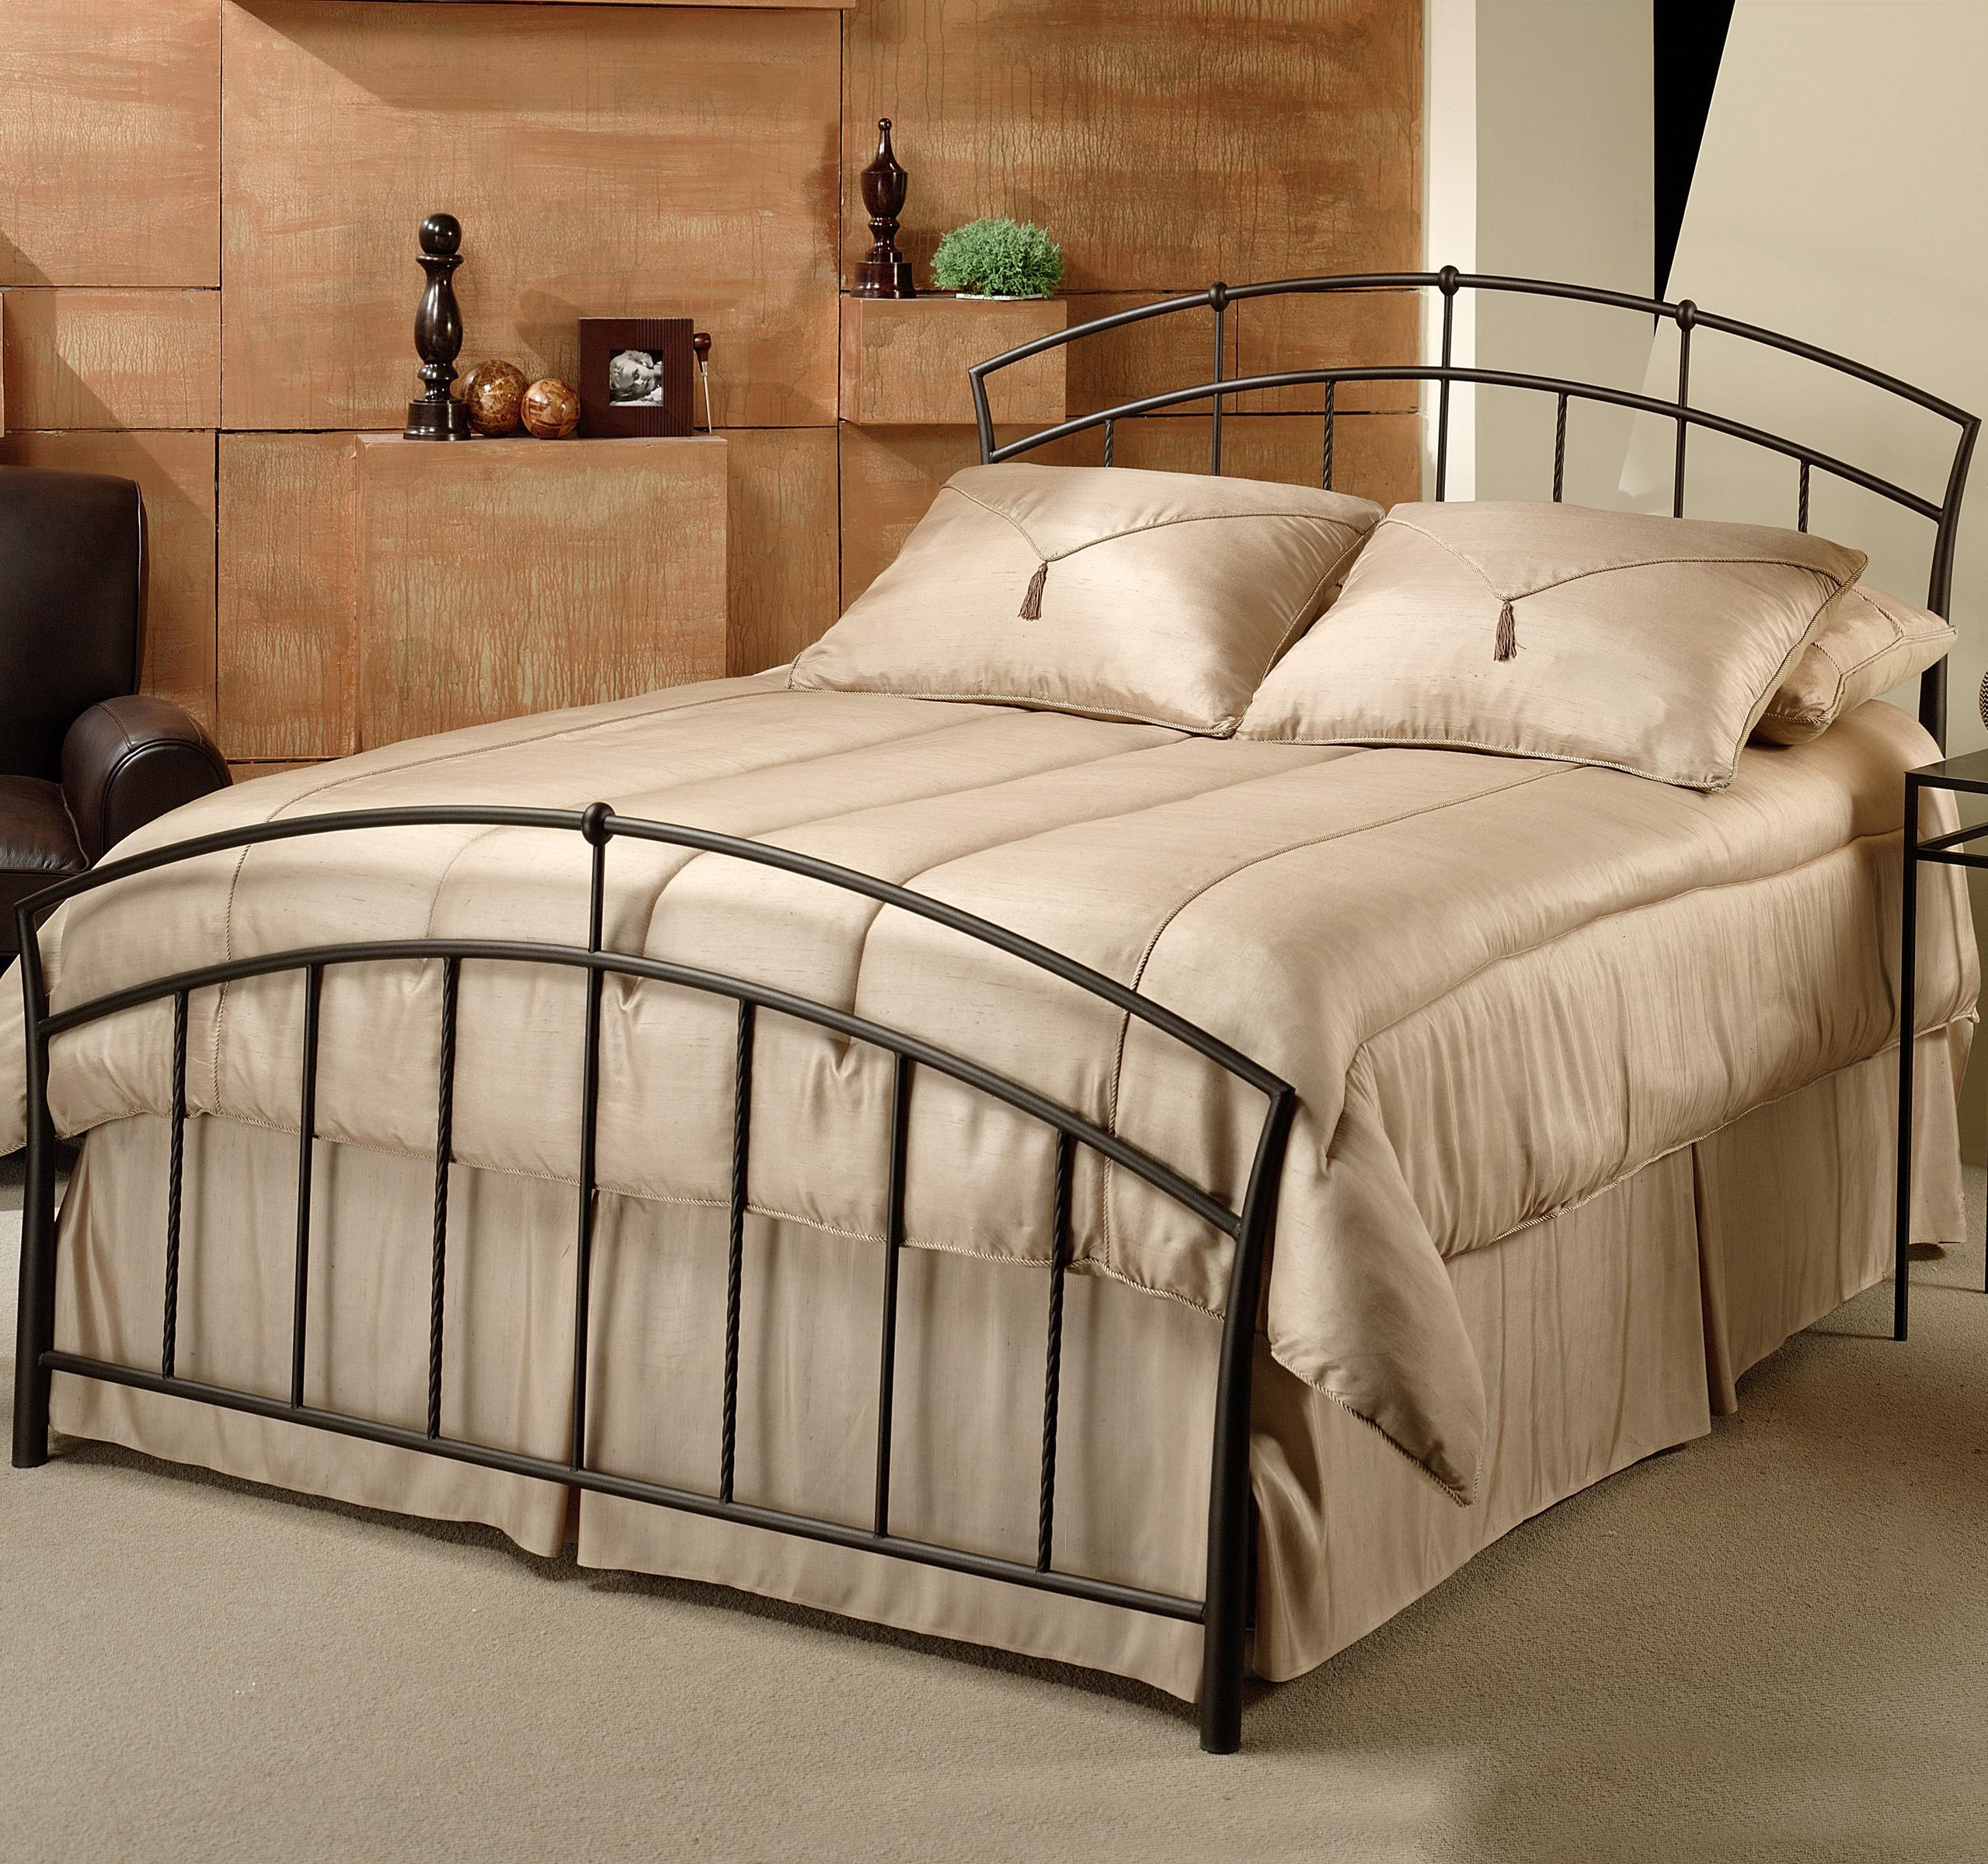 Hillsdale Metal Beds Full Vancouver Bed - Item Number: 1024BFR